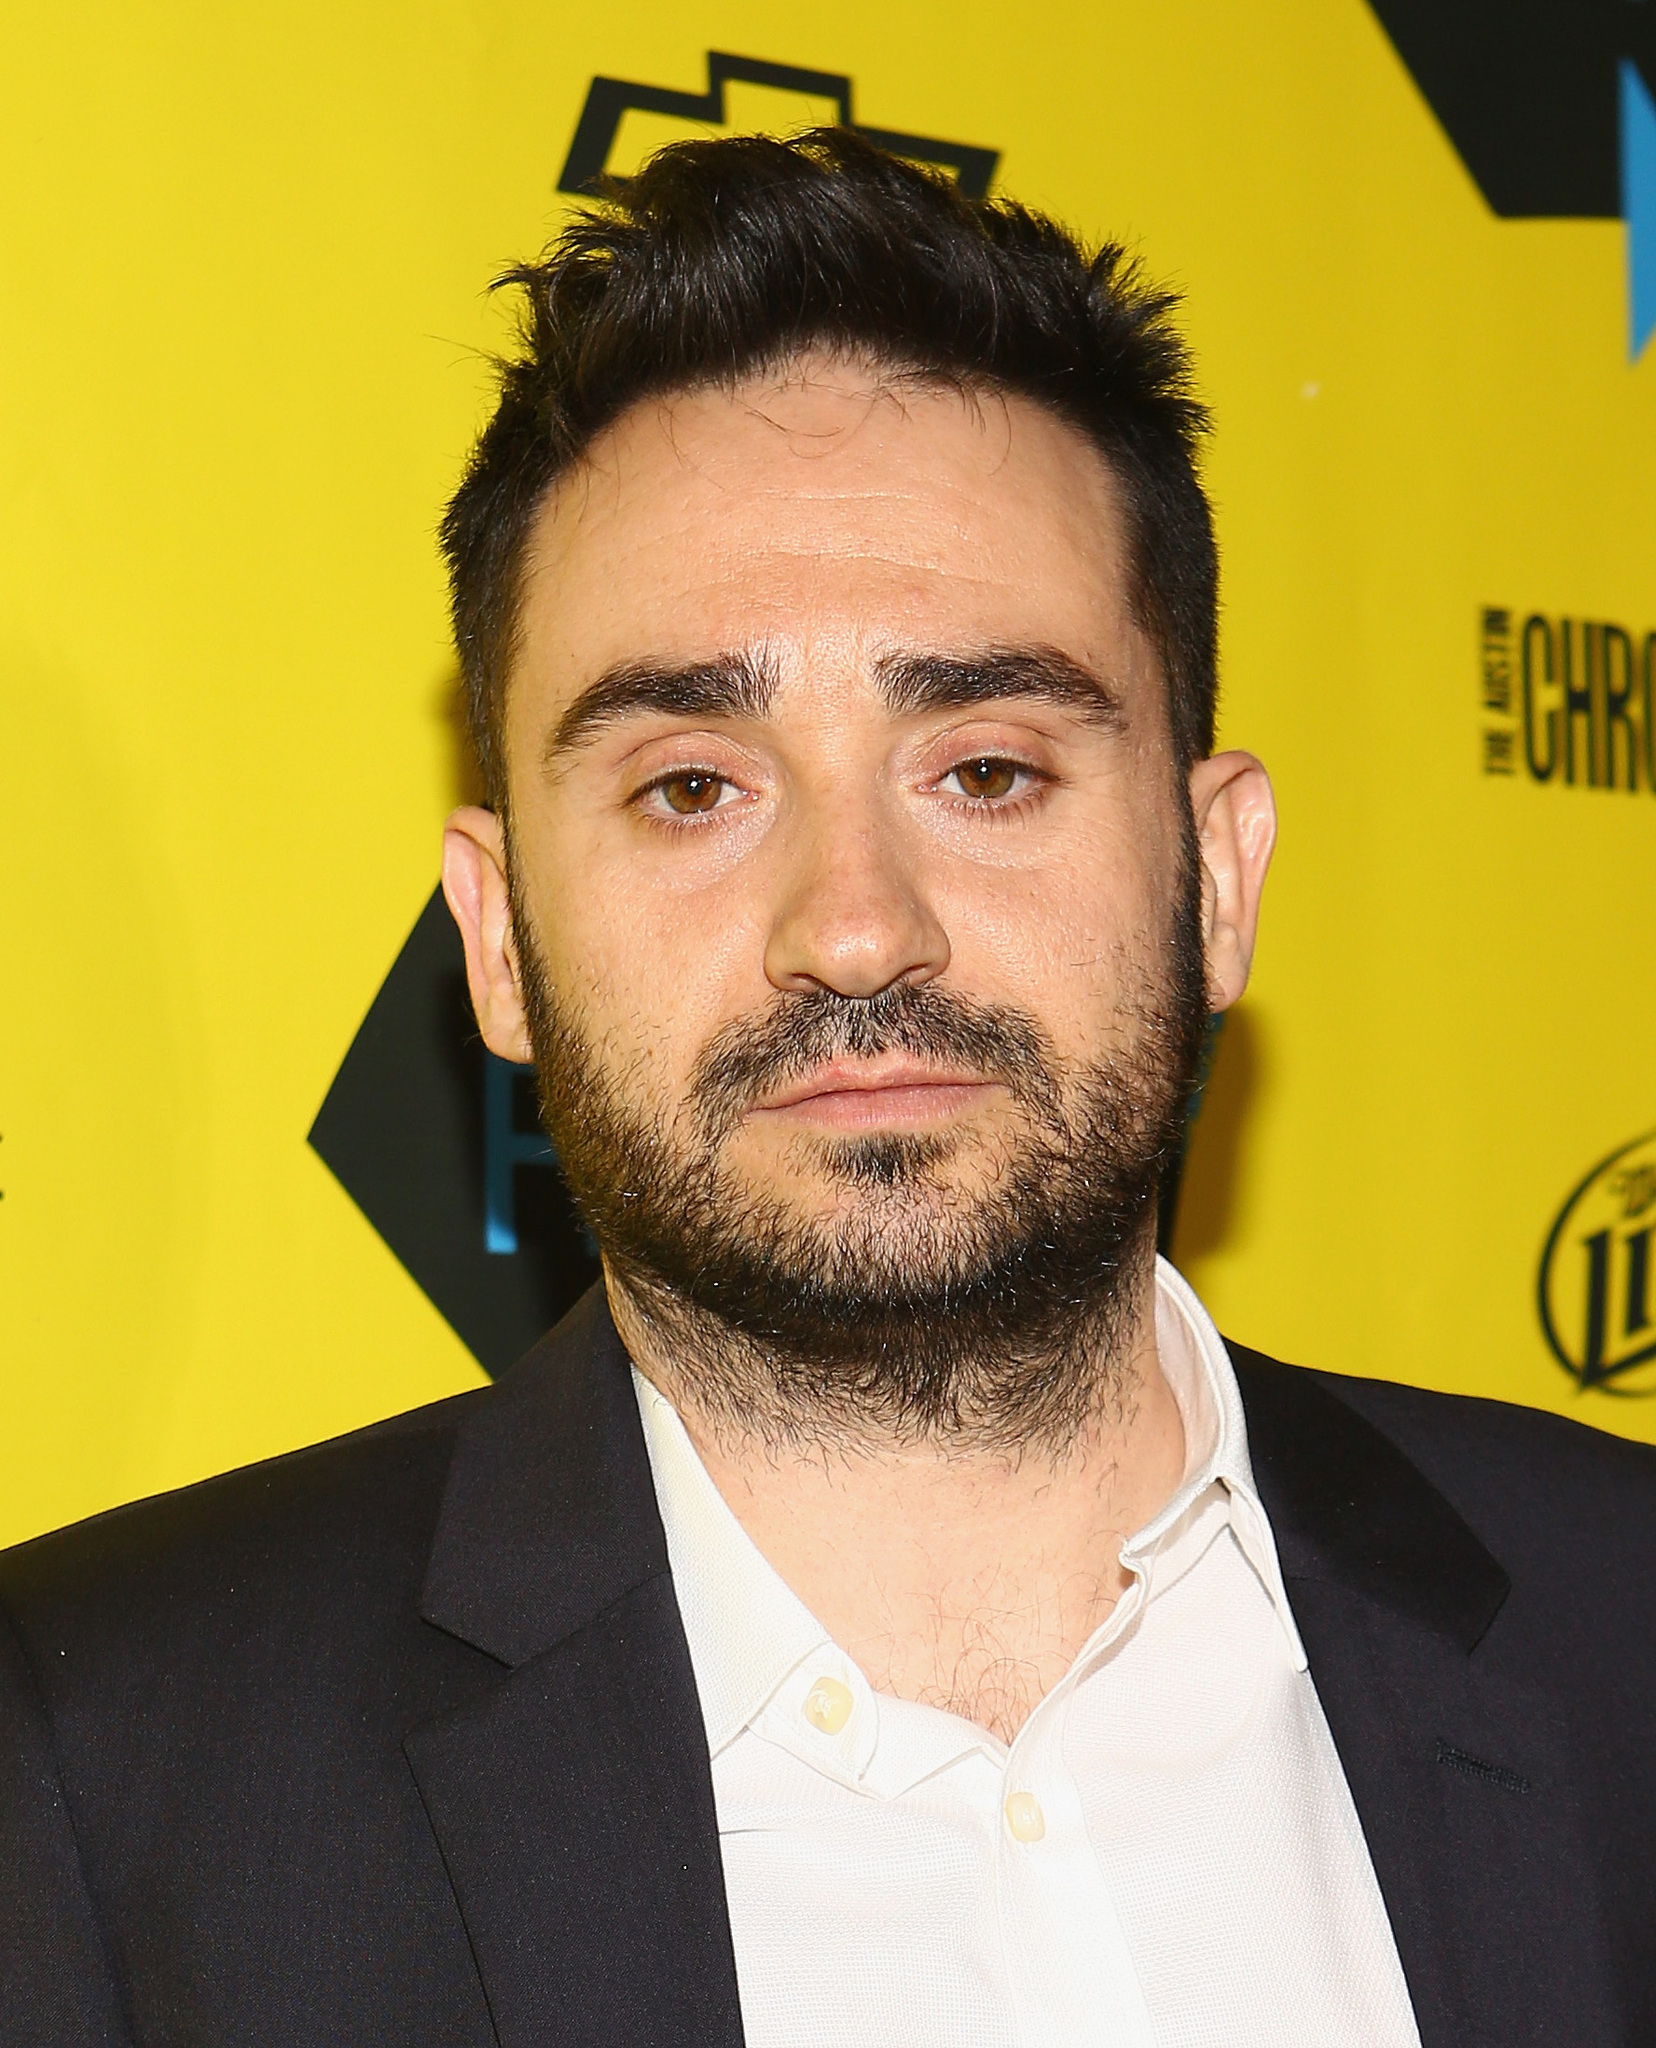 J.A. Bayona at event of Penny Dreadful (2014)